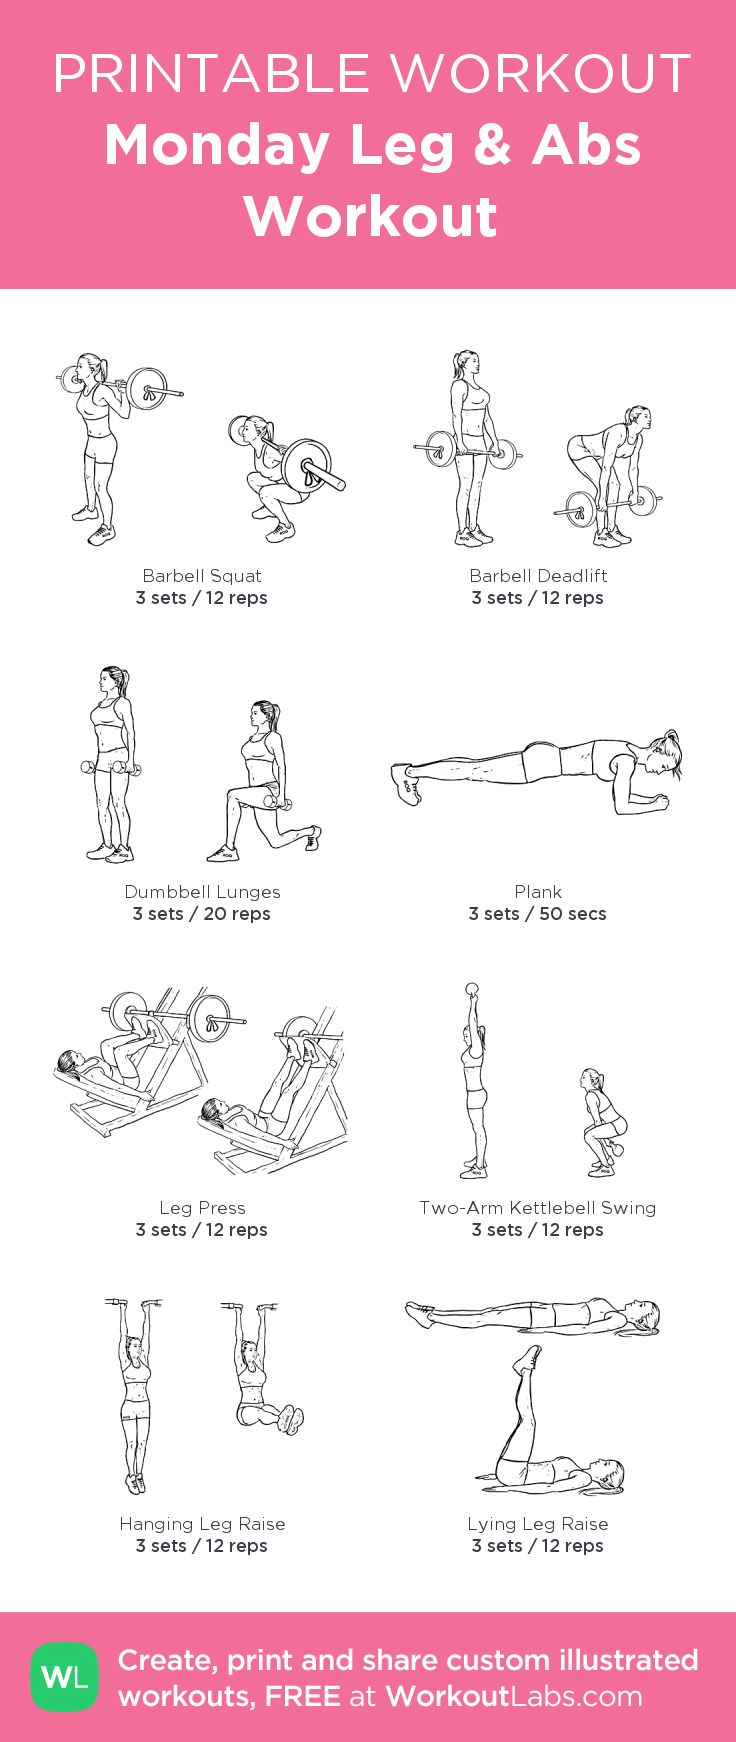 Monday Leg & Abs Workout: my custom printable workout by @WorkoutLabs #workoutlabs #customworkout #legworkout #absworkout